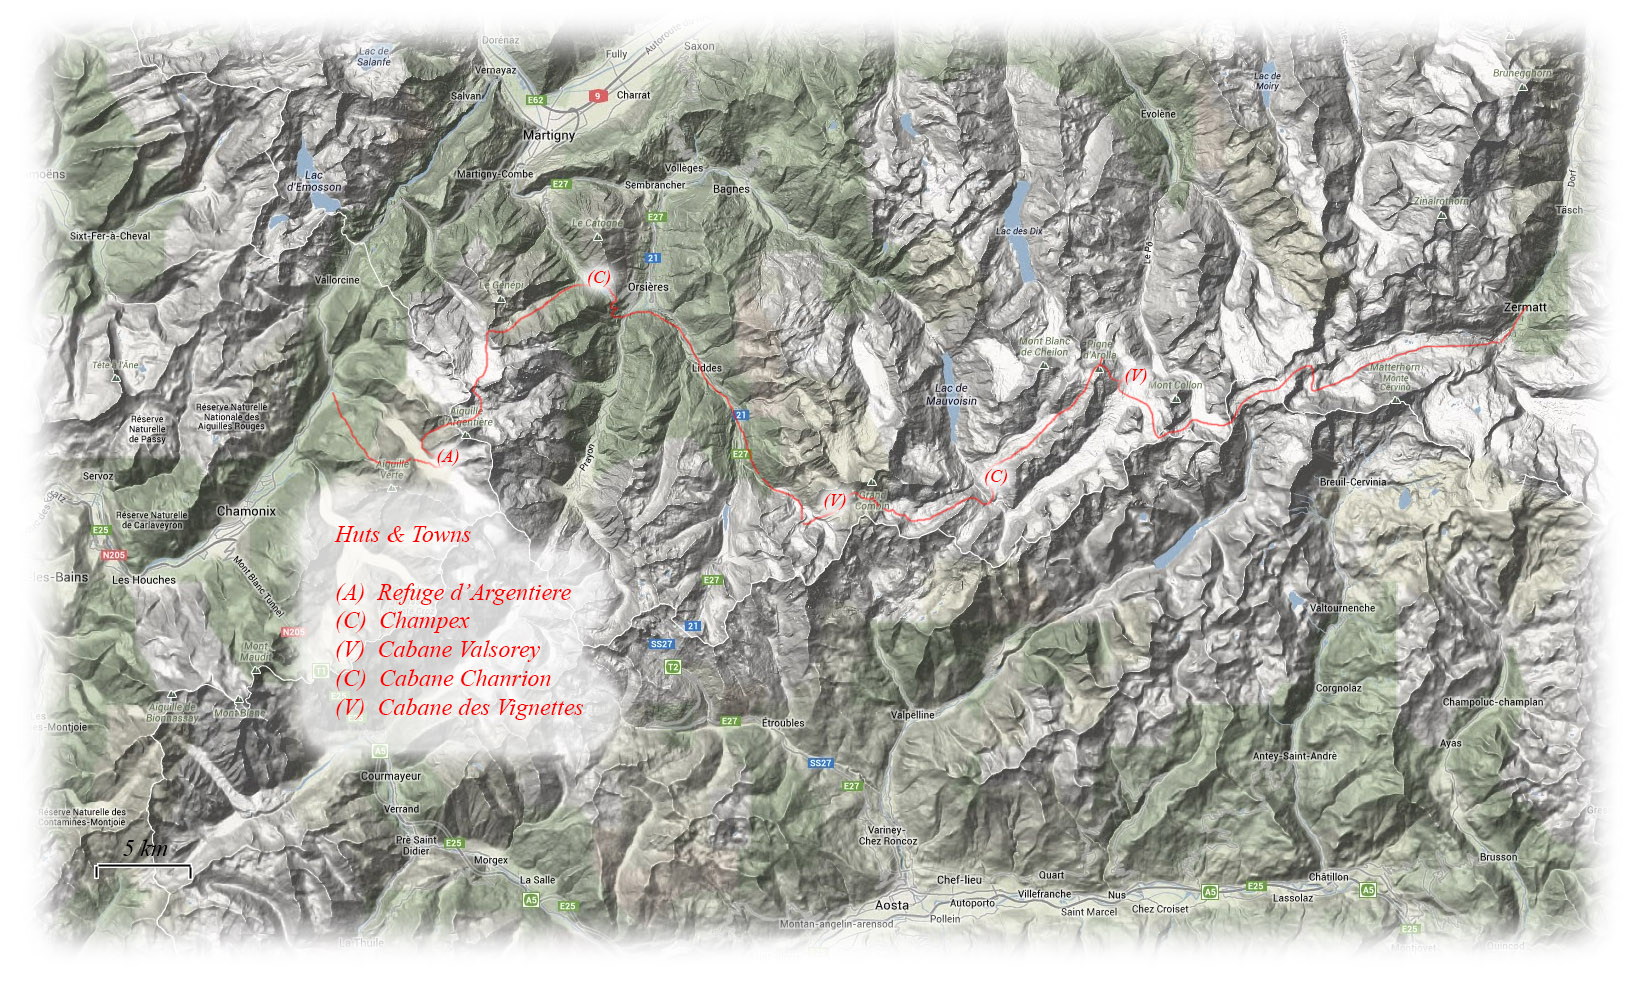 Haute route ski traverse may 2014 frontrange imaging for 2014 haute route